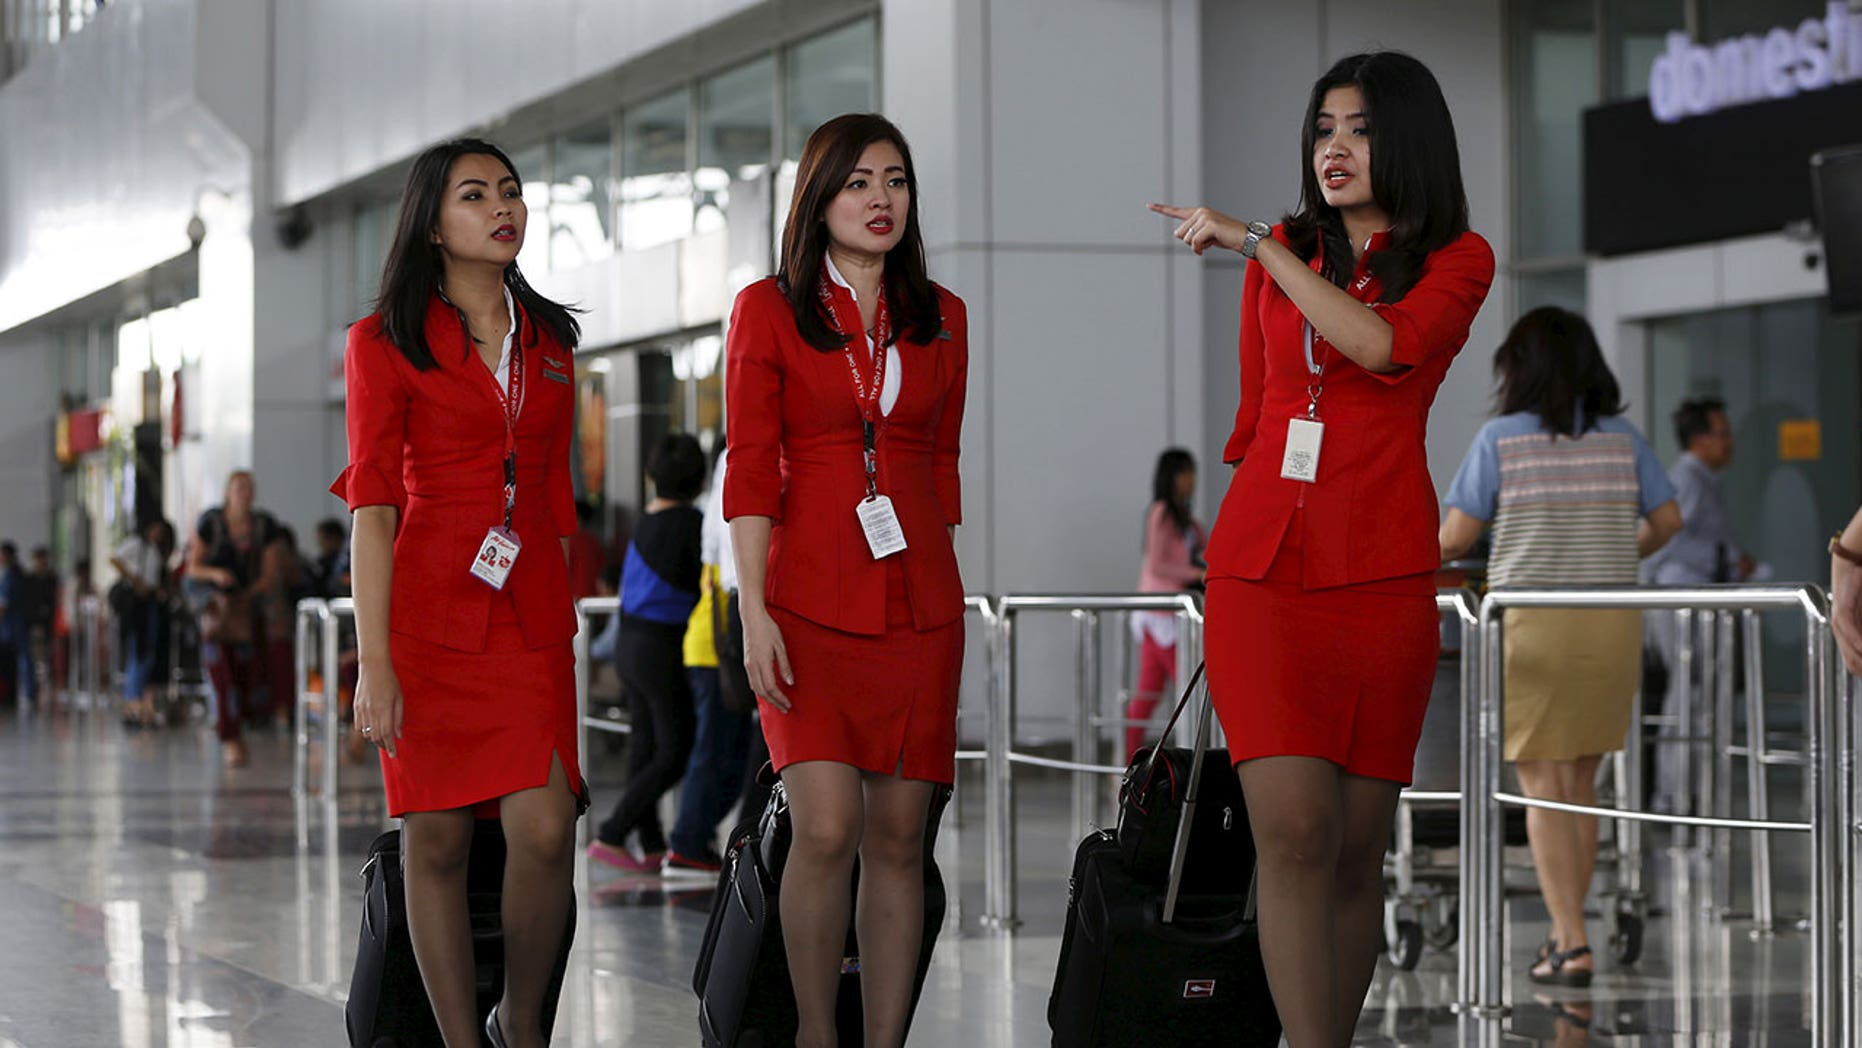 Malaysian senator Hanafi Mamat posted a letter he claims to have received from an AirAsia passenger, who, like him, was unhappy with the uniforms worn by the airline's flight attendants.